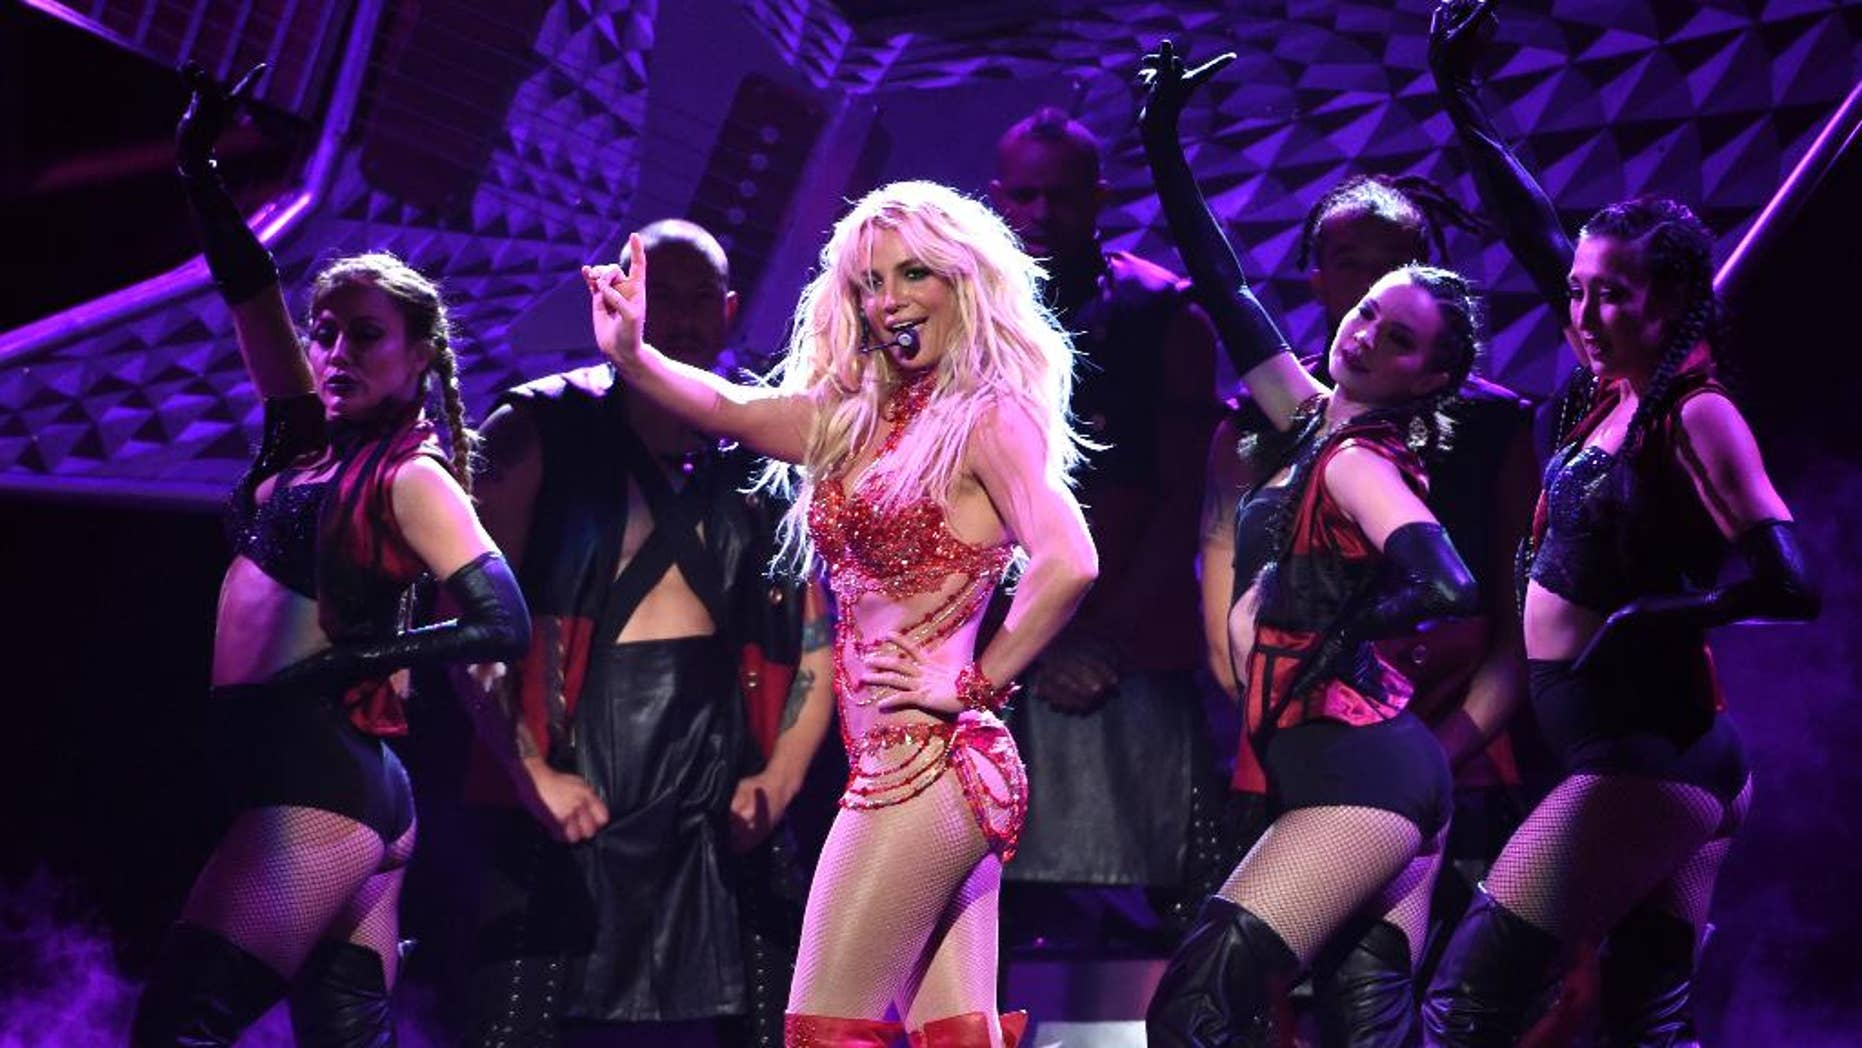 """FILE - In this May 22, 2016 file photo, Britney Spears performs at the Billboard Music Awards at the T-Mobile Arena, in Las Vegas. Spears will return to the MTV Video Music Awards stage to perform her new single, """"Make Me...,"""" at the Aug. 28 show at Madison Square Garden in New York. She last performed at the 2007 VMAs. (Photo by Chris Pizzello/Invision/AP, File)"""